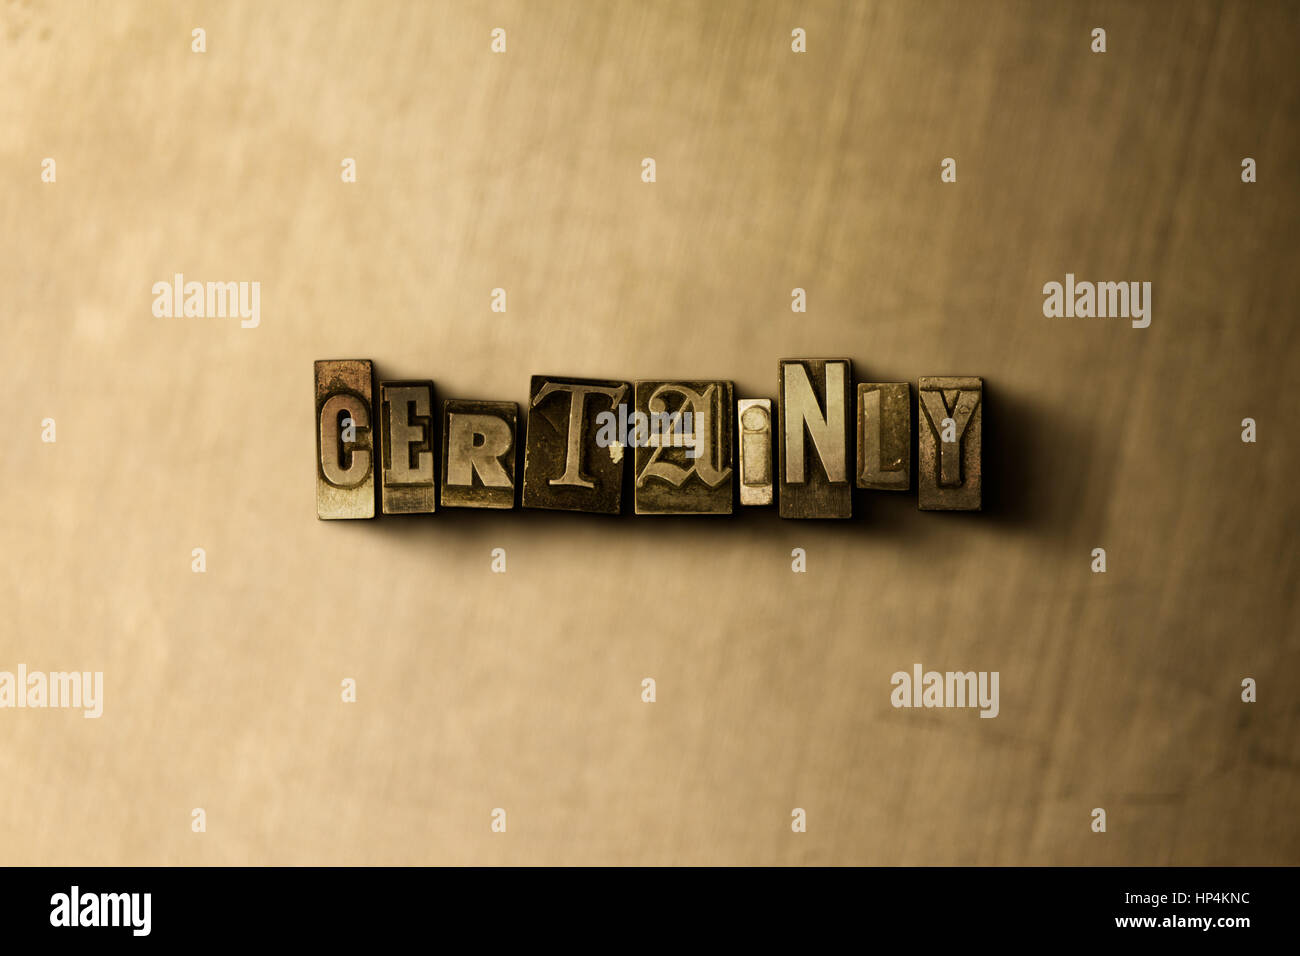 CERTAINLY - close-up of grungy vintage typeset word on metal backdrop. Royalty free stock illustration.  Can be - Stock Image